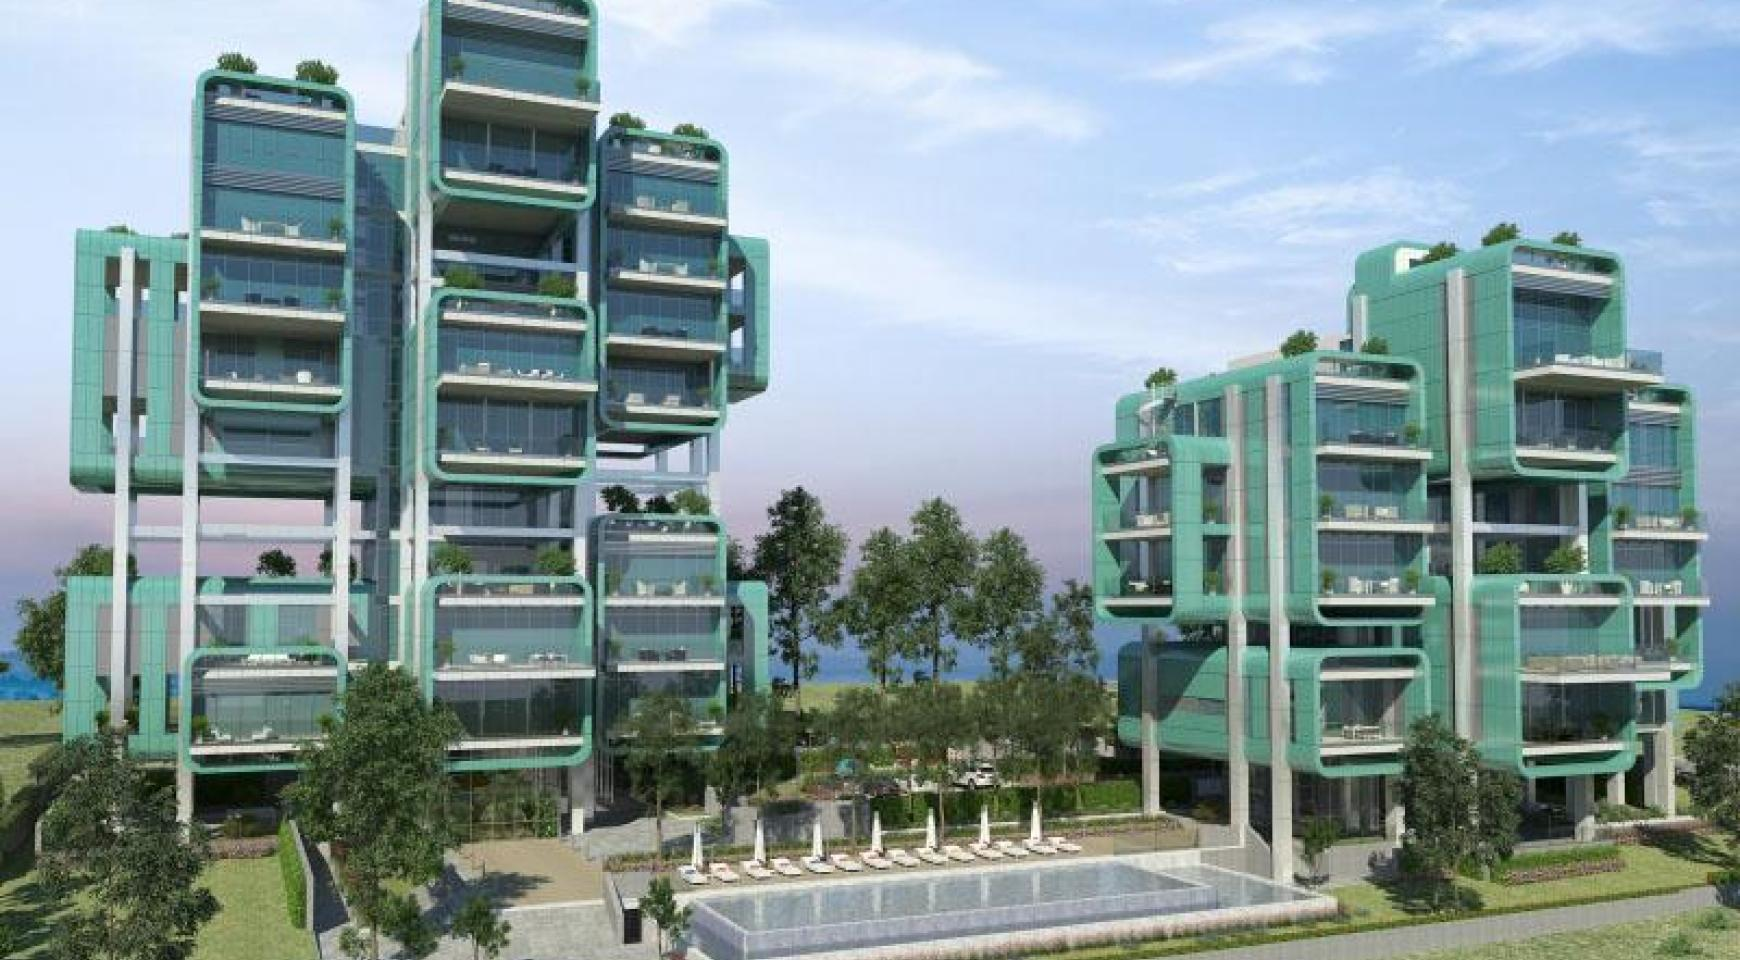 Elite 3 Bedroom Apartment within a New Complex near the Sea - 24